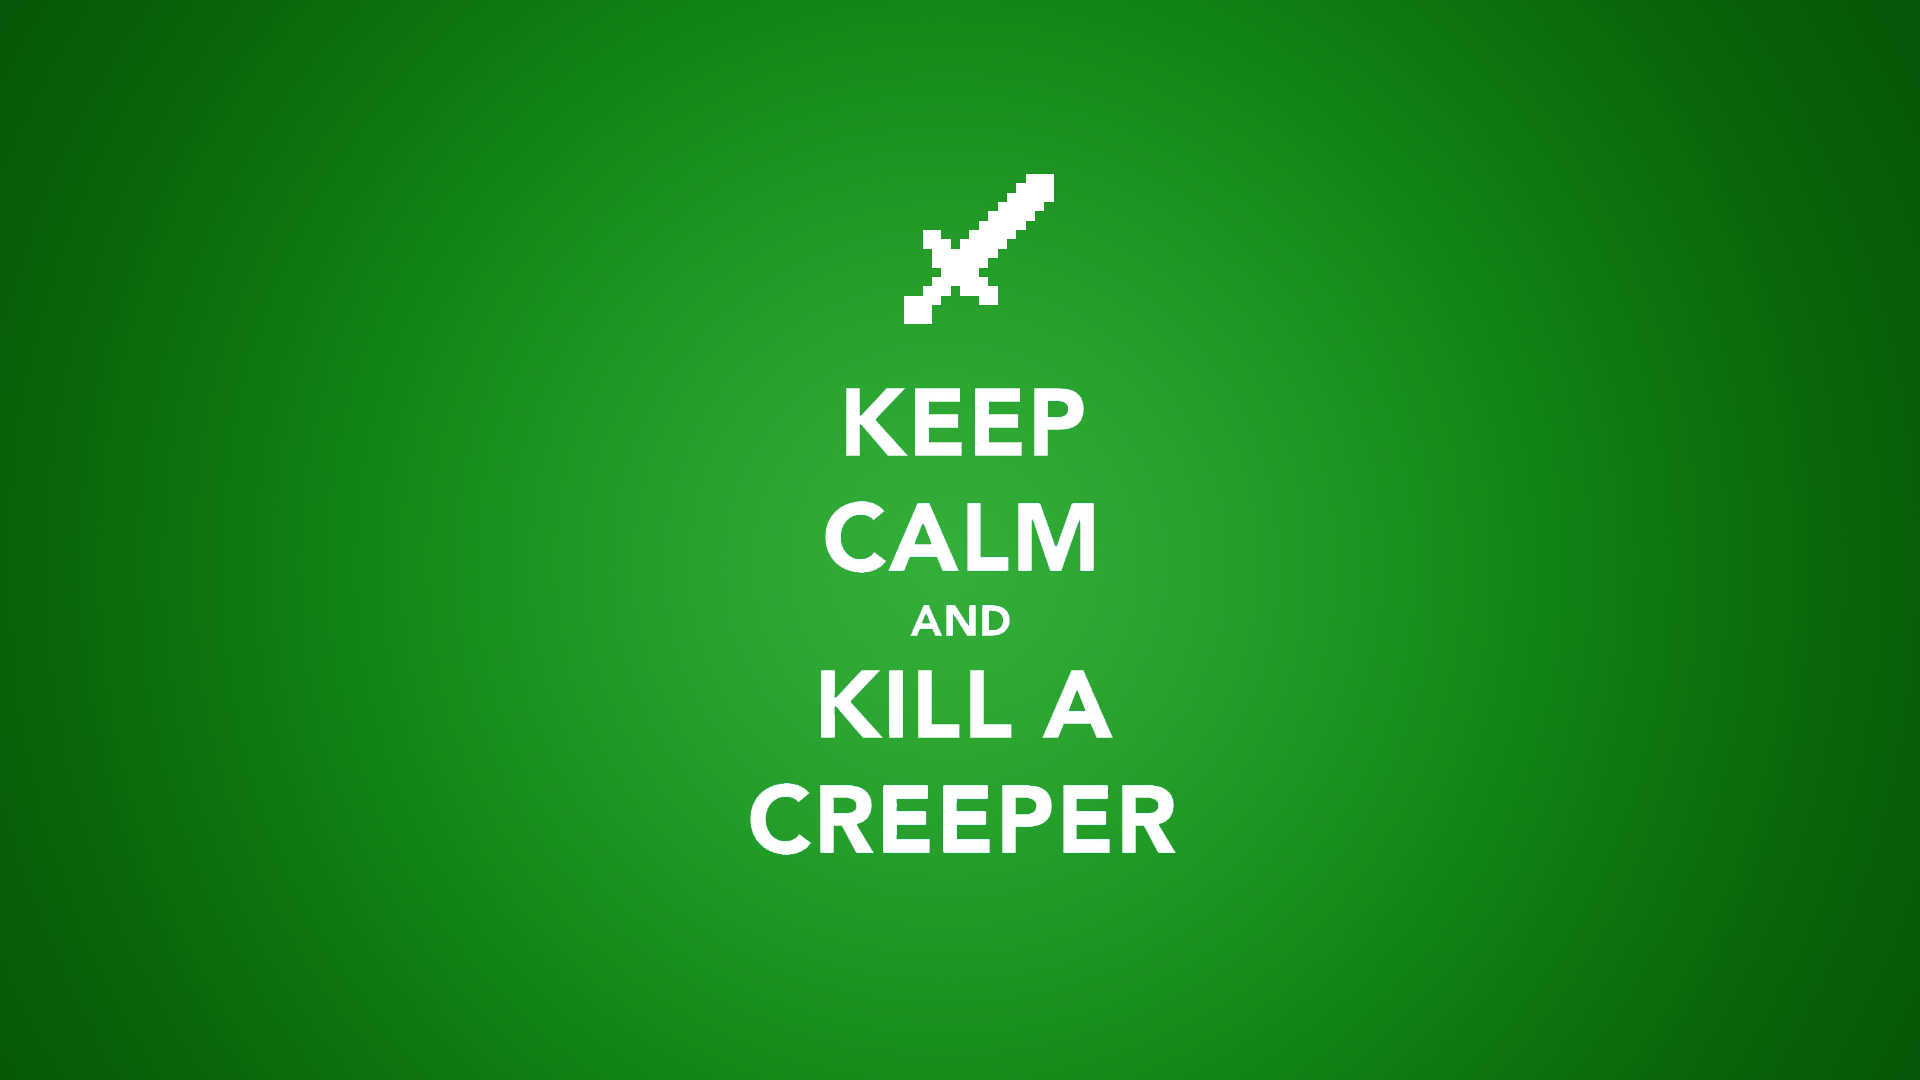 Minecraft Quote Wallpaper Creeper #724 | Hdwidescreens.